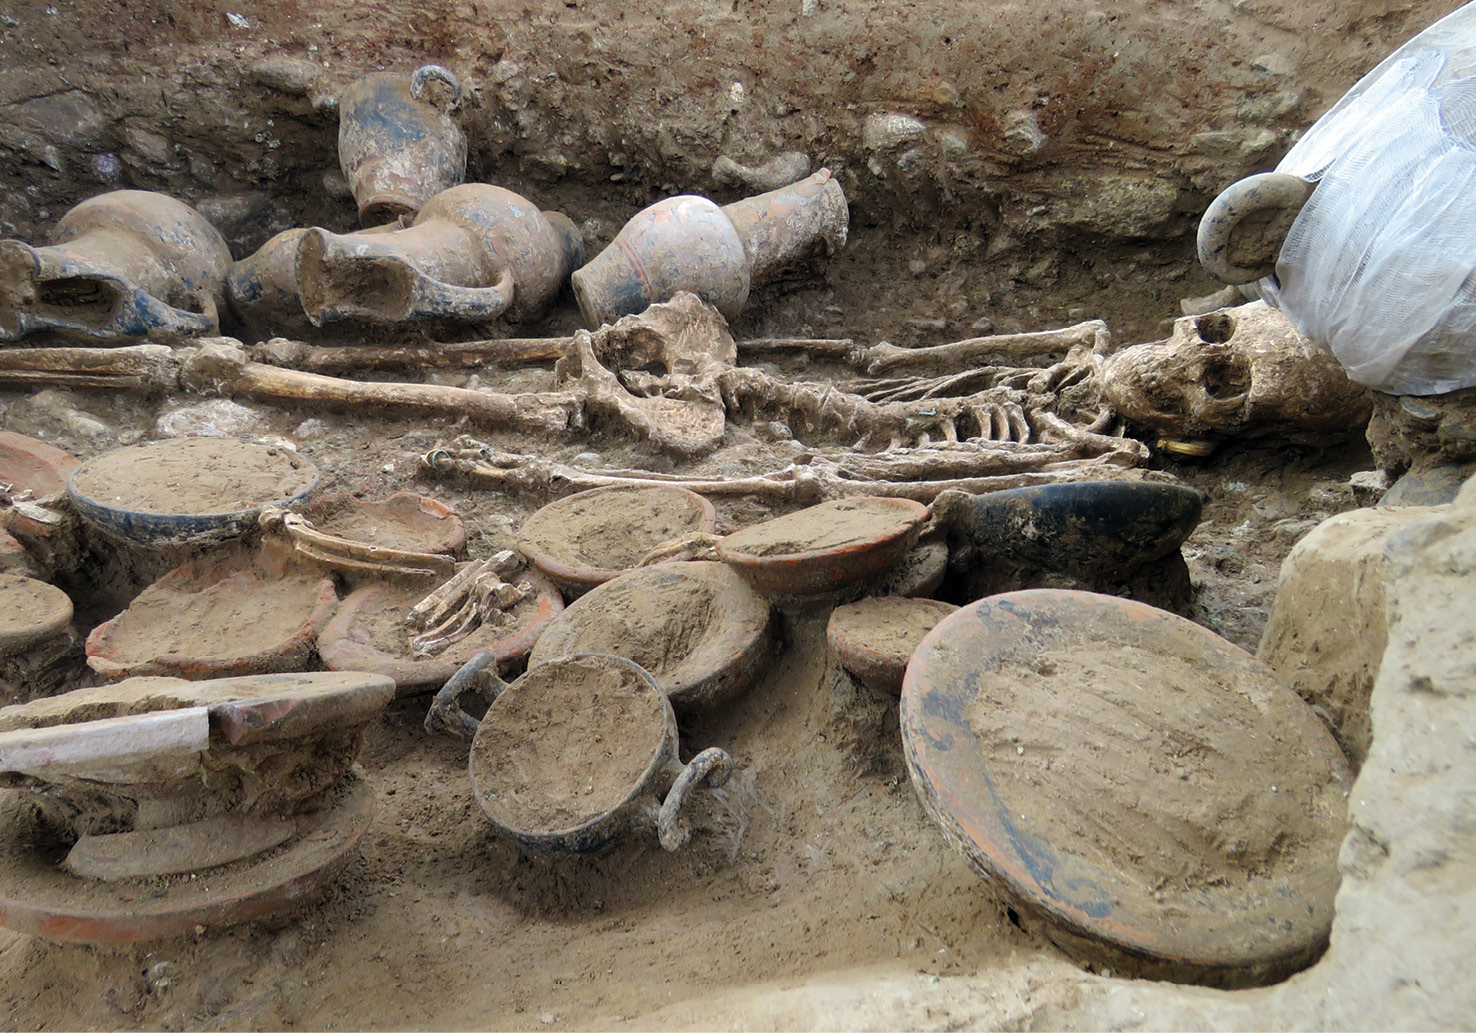 left A view of the burial, as seen from the entrance to the burial chamber via the corridor. In the foreground, there are goblets and cups, as well as animal remains. Beyond lie the remains of the woman buried in the chamber, and then the painted jugs.